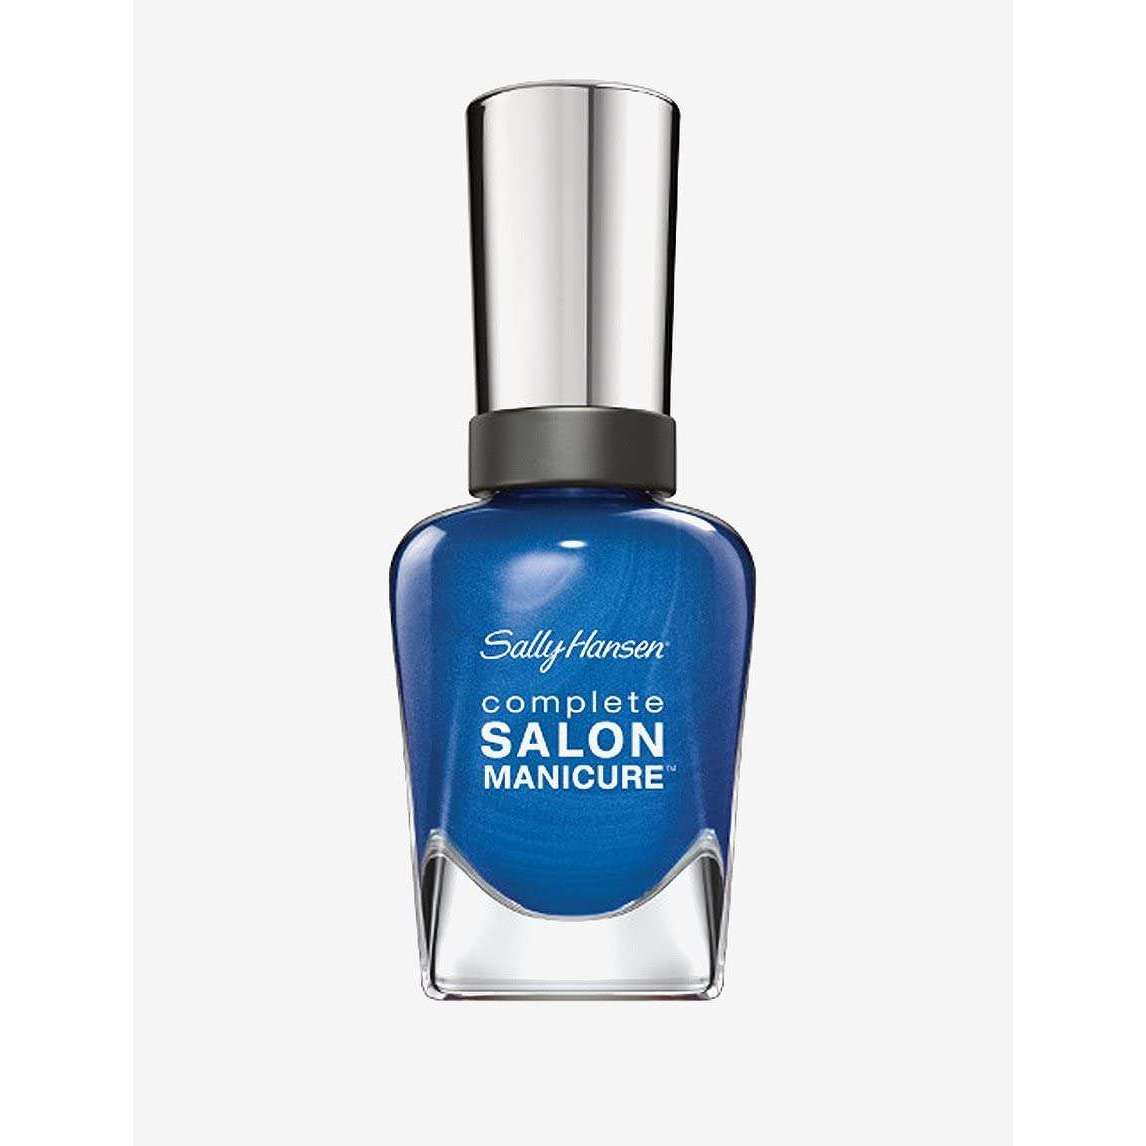 Sally Hansen Complete Salon Manicure Nail Polish - 827 Clay (14.7ml)